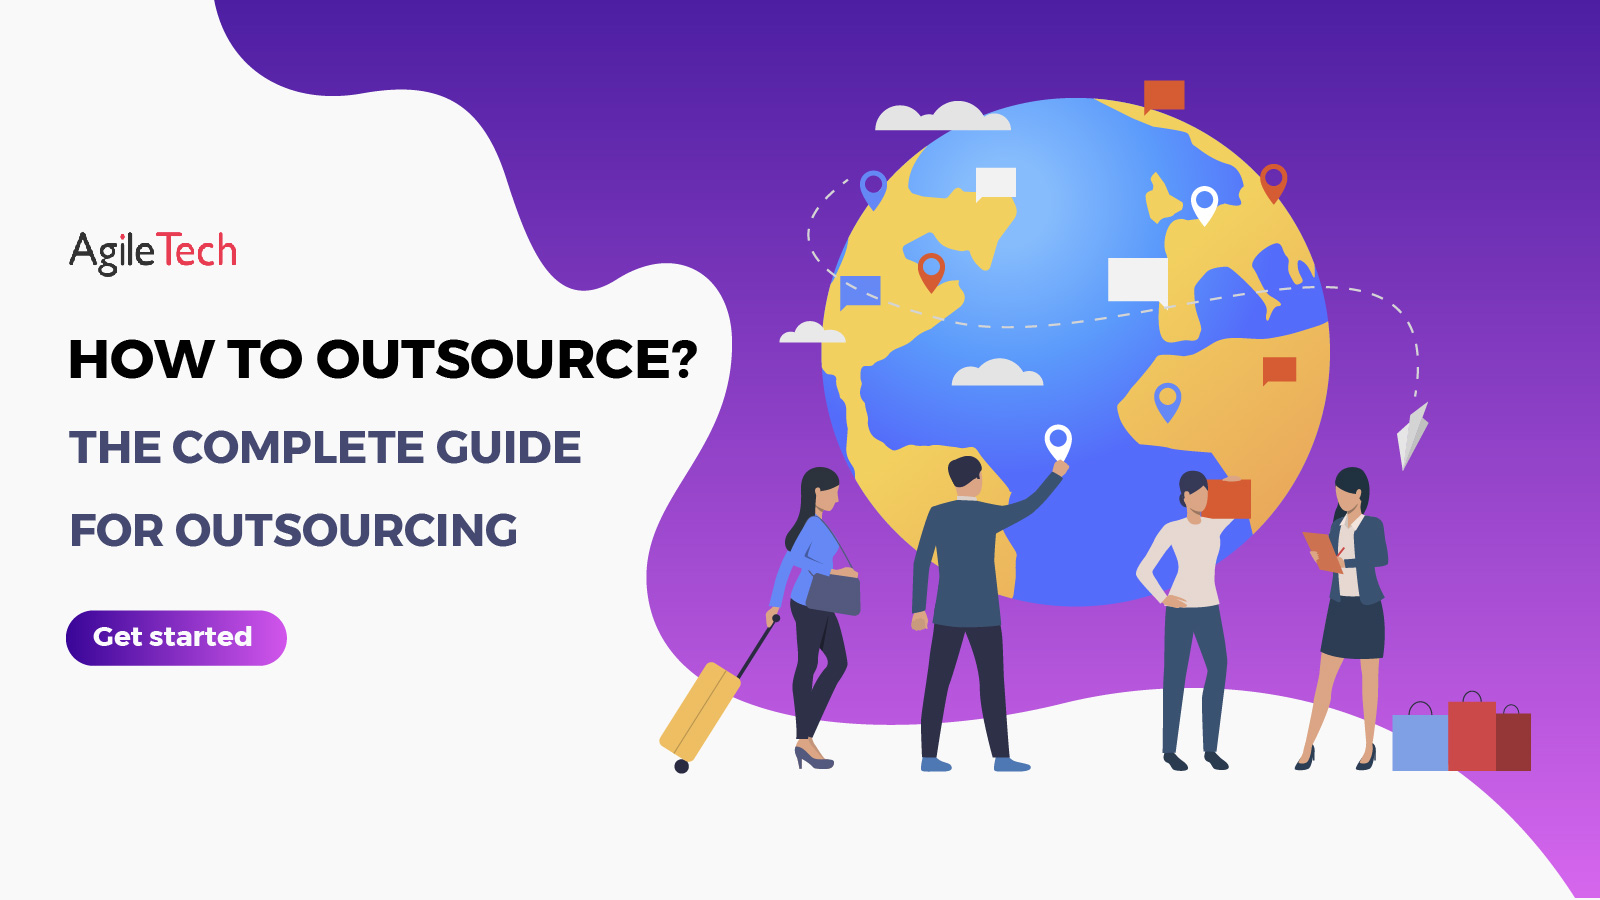 How to outsource software development? The complete guide for outsourcing quality outsourcing company in vietnam by agiletech